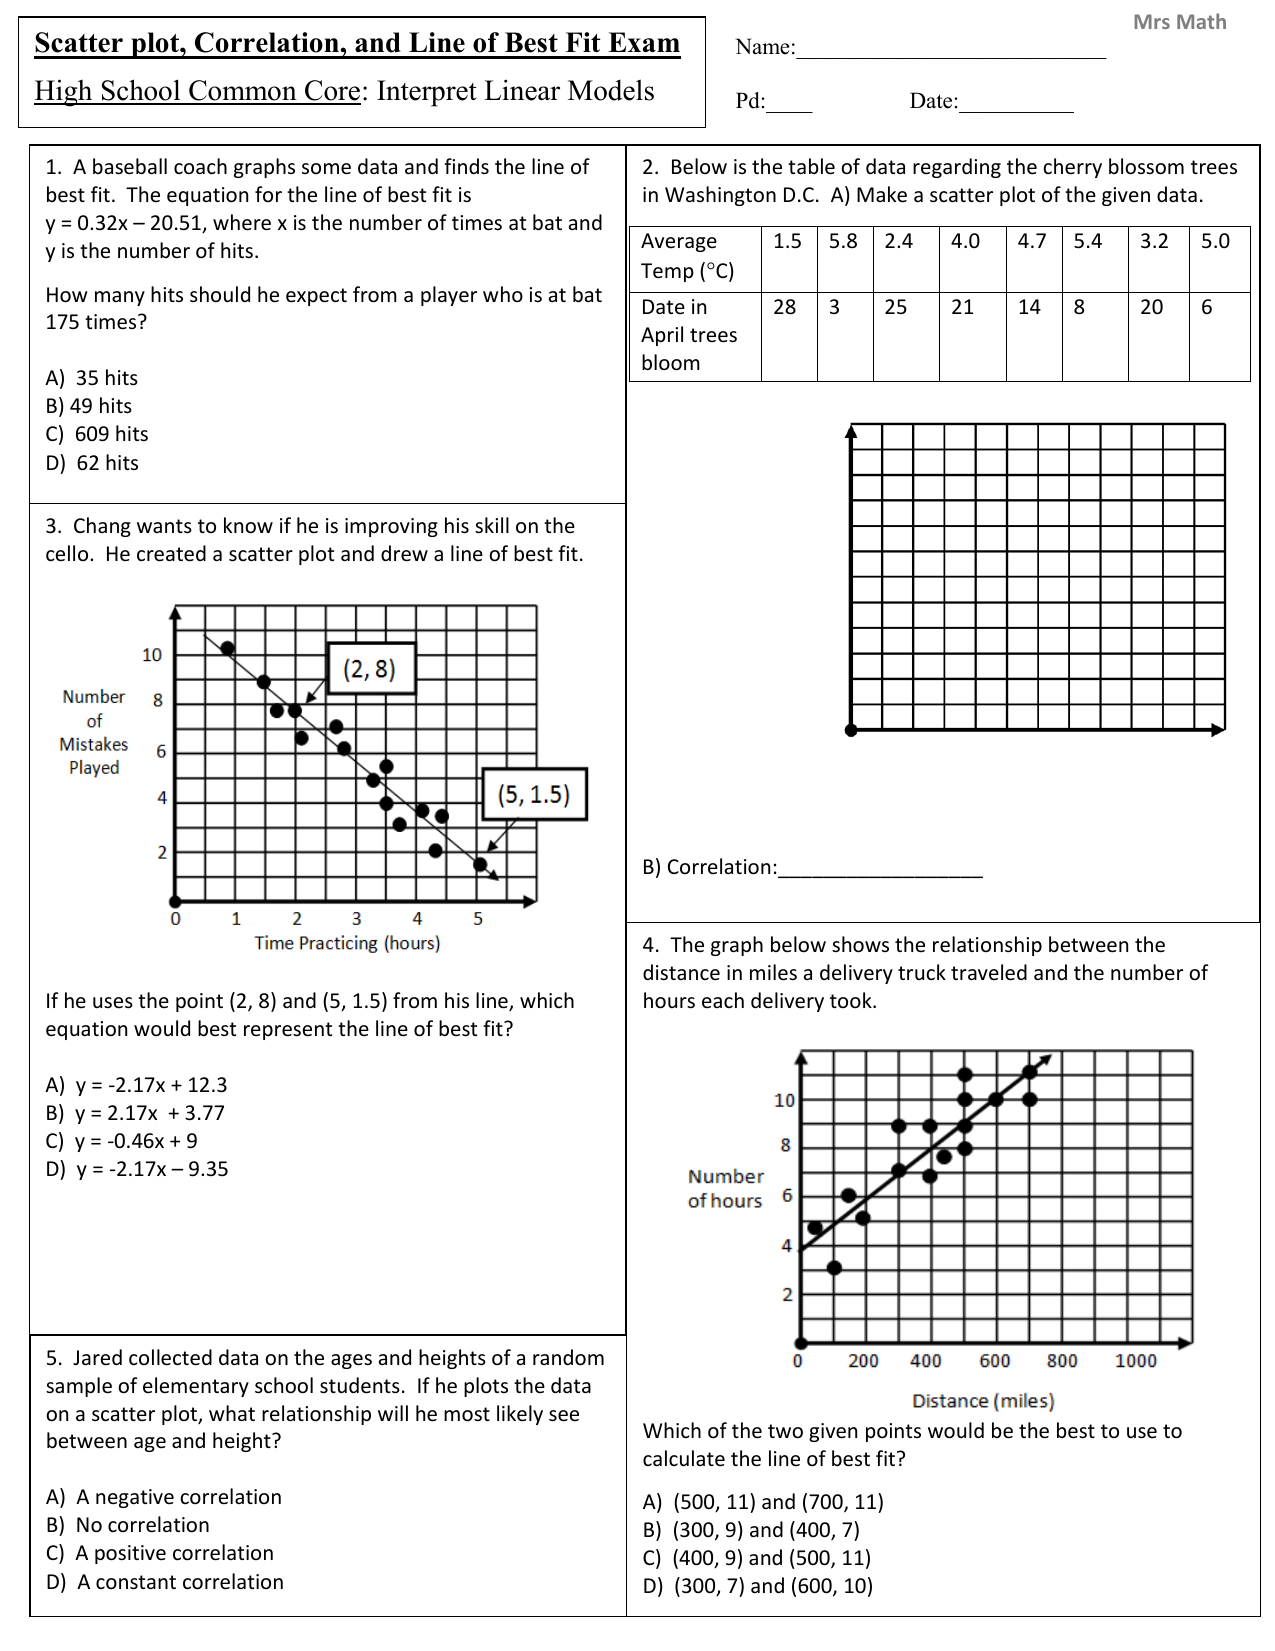 Scatter Plot Correlation And Line Of Best Fit Exam High School